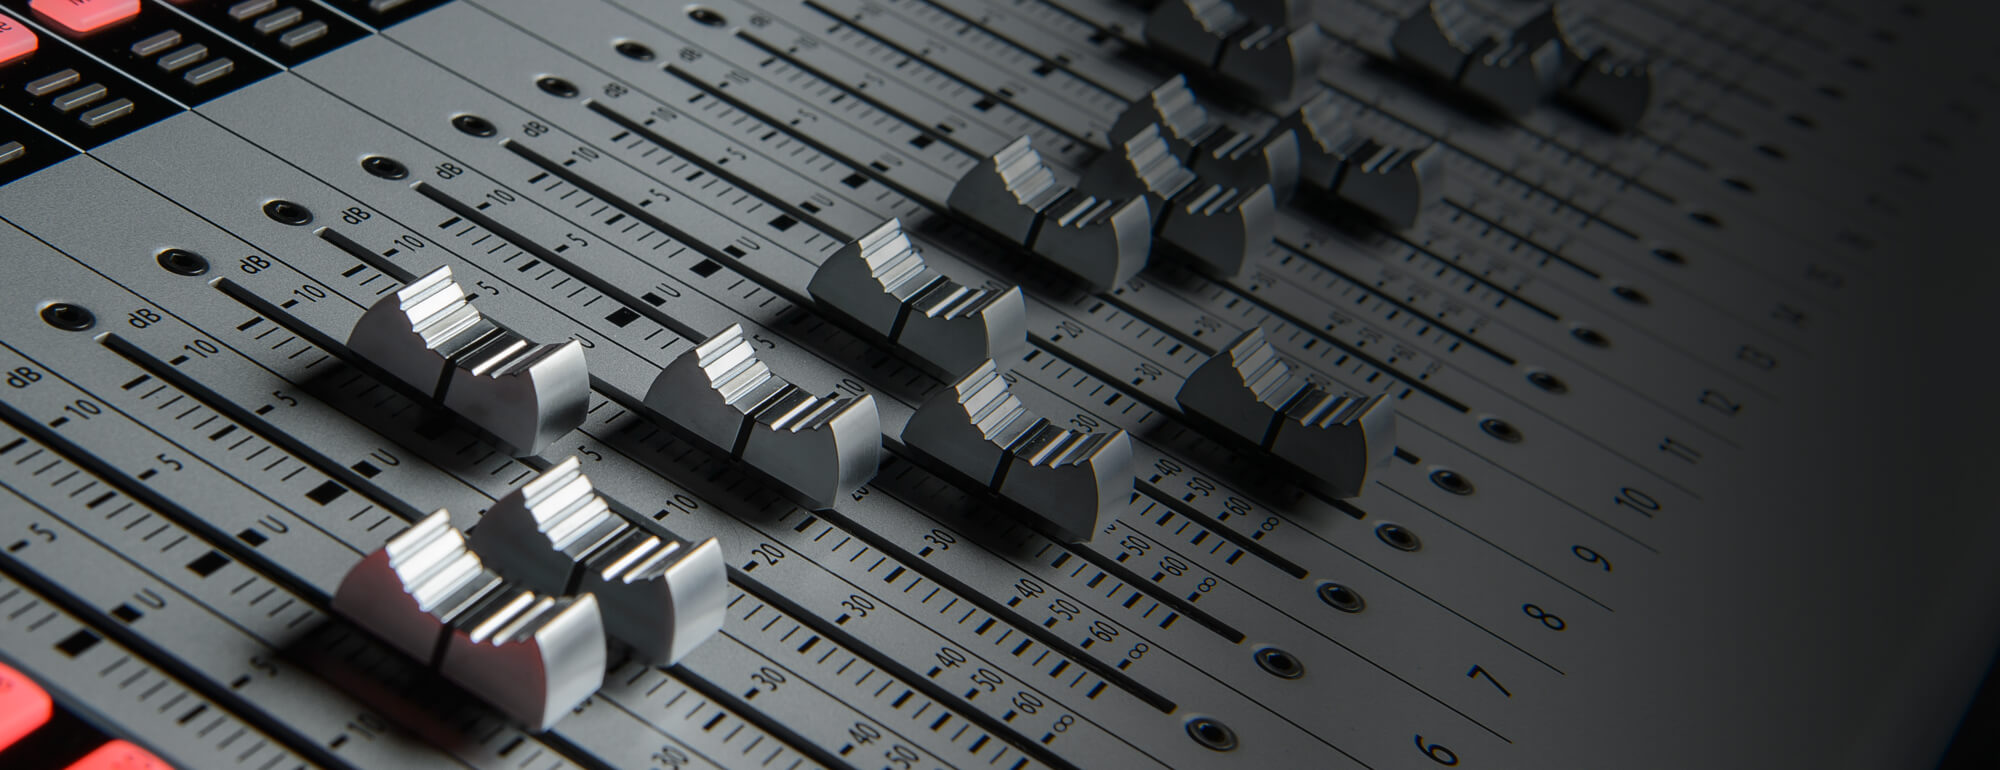 Studiolive 24 Presonus This Is The Circuit For One Channel Only You Must Build 5 Times Can More Easily And Flexibly Control Groups Of Channels These Are A Few Many Ways Customize Your Mixer Exactly To